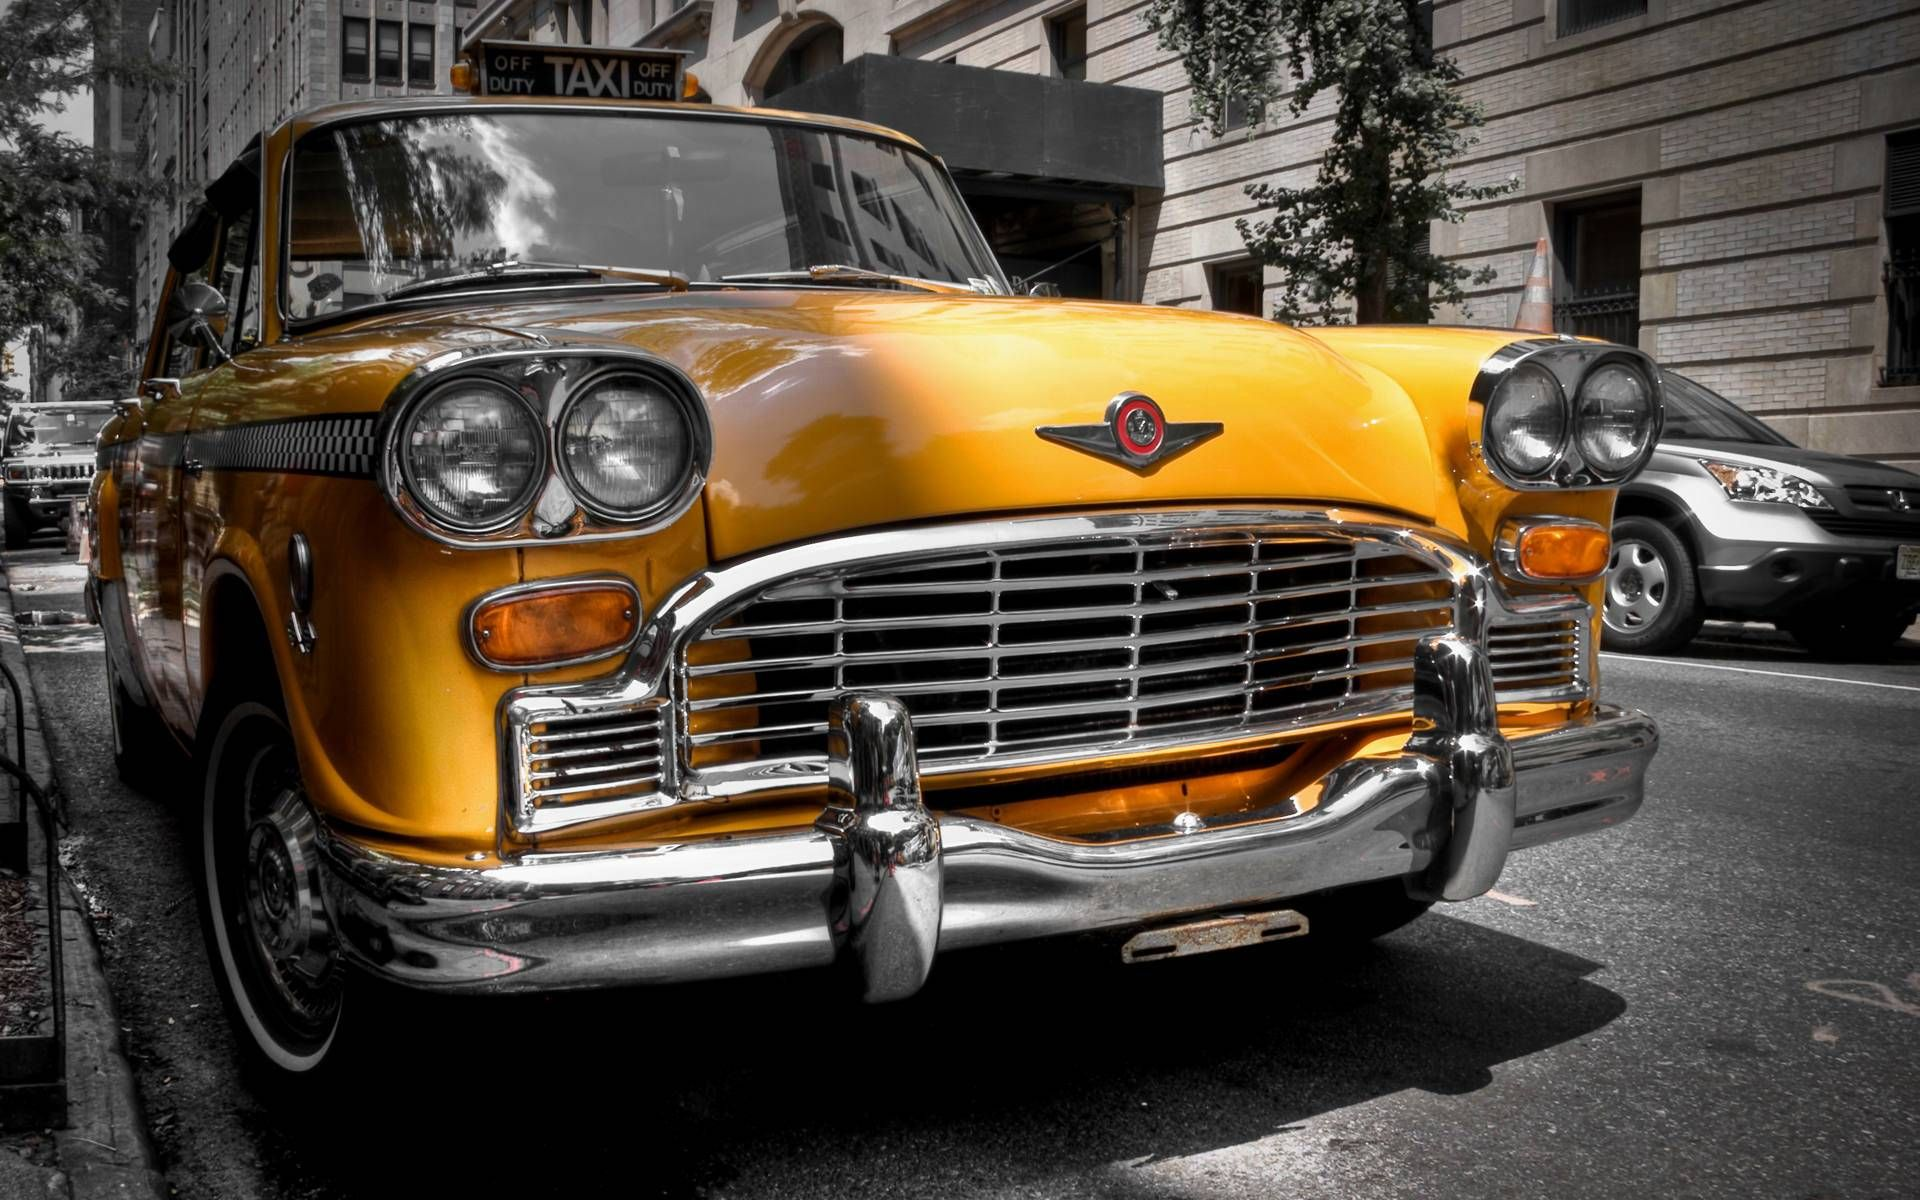 Classic-cars-wallpapers-hd-best-classic-car-wallpapers-hd